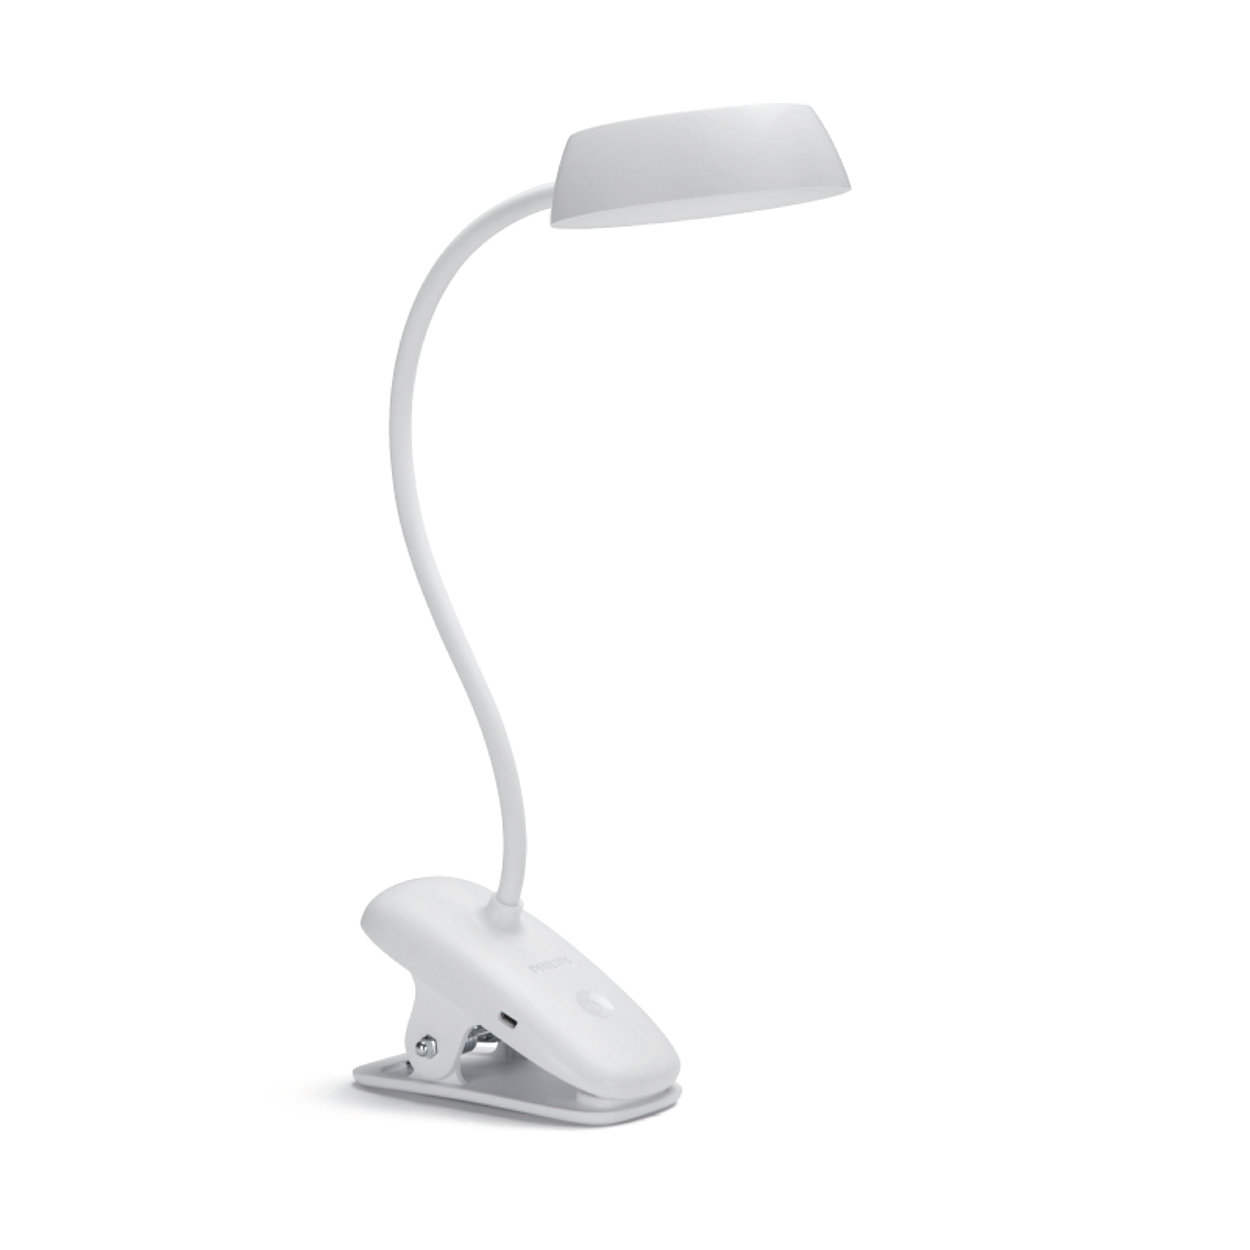 Comfortable LED light that's easy on your eyes